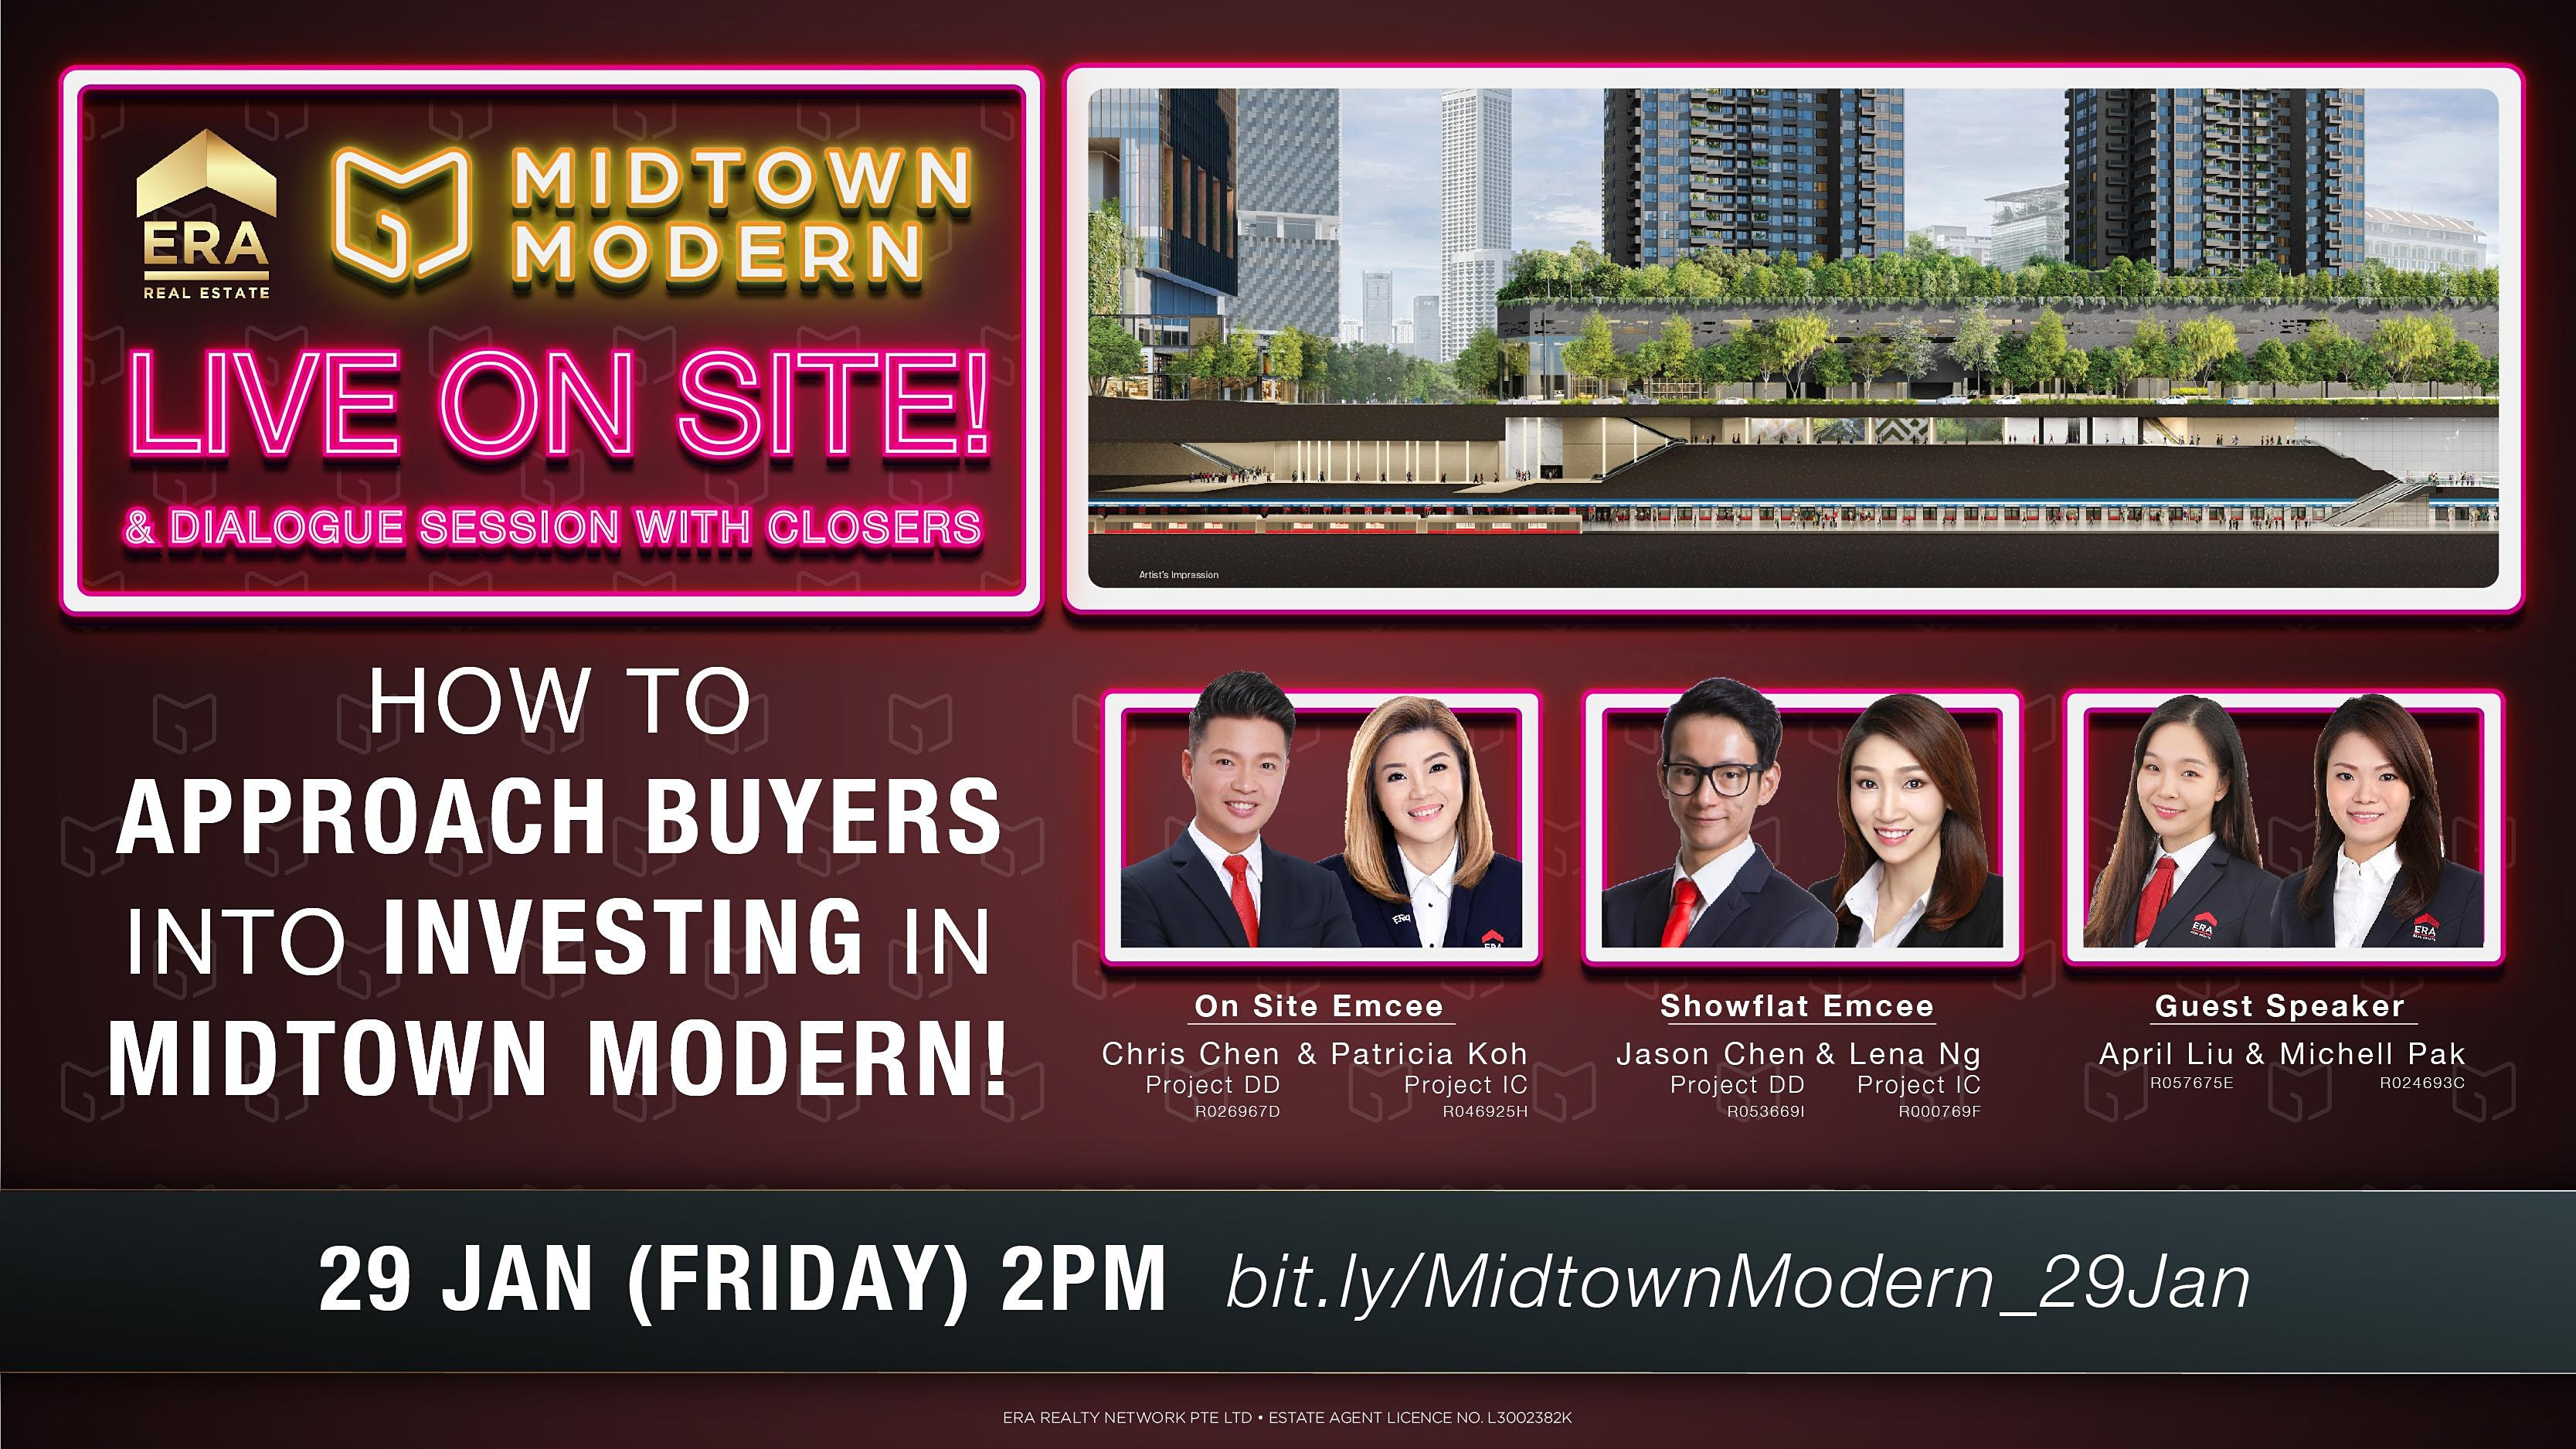 How to Approach Buyers Into Investing in Midtown Modern!